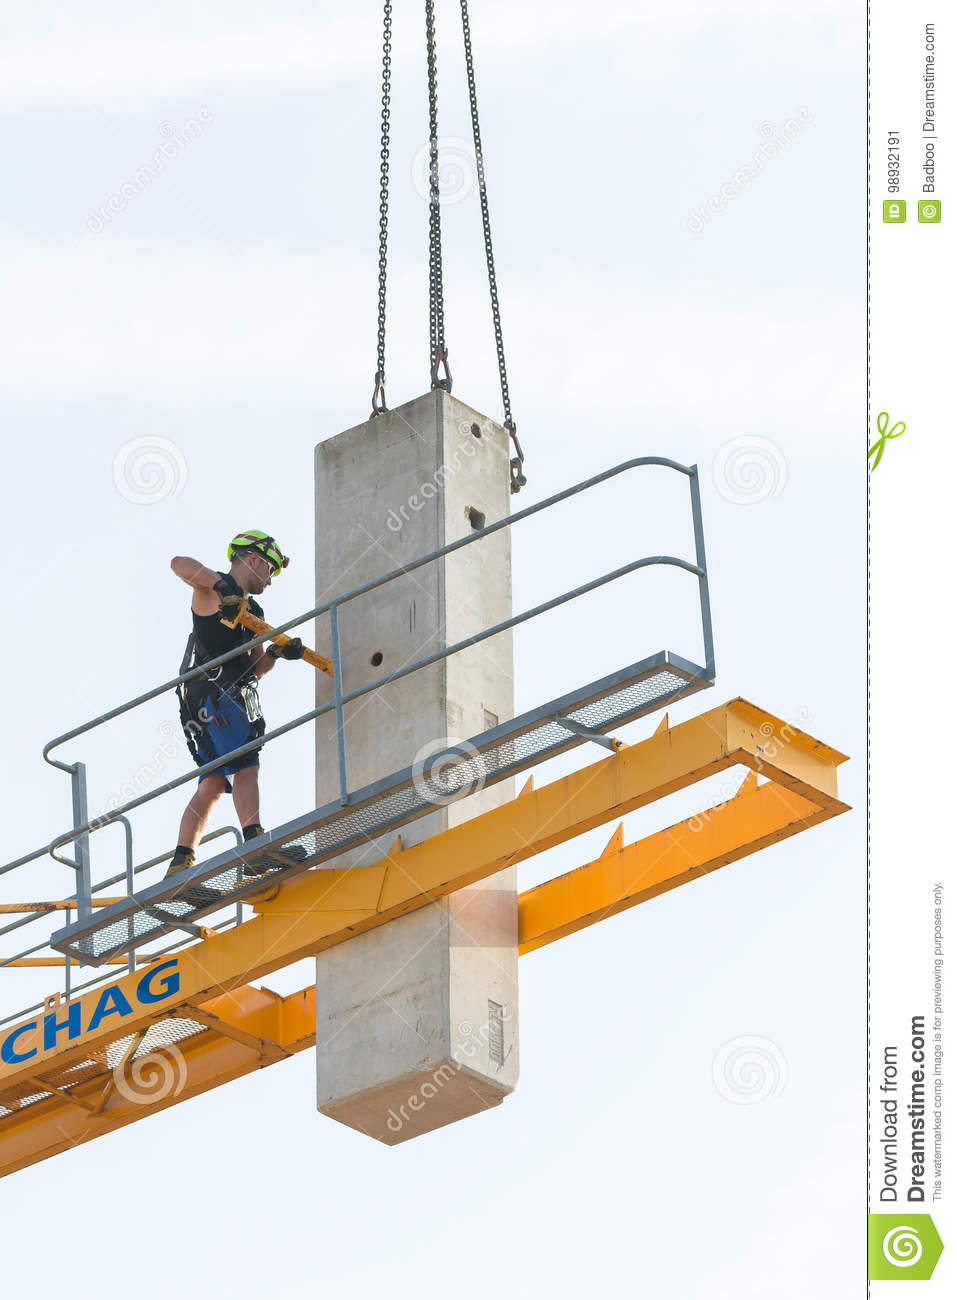 Crane removal worker